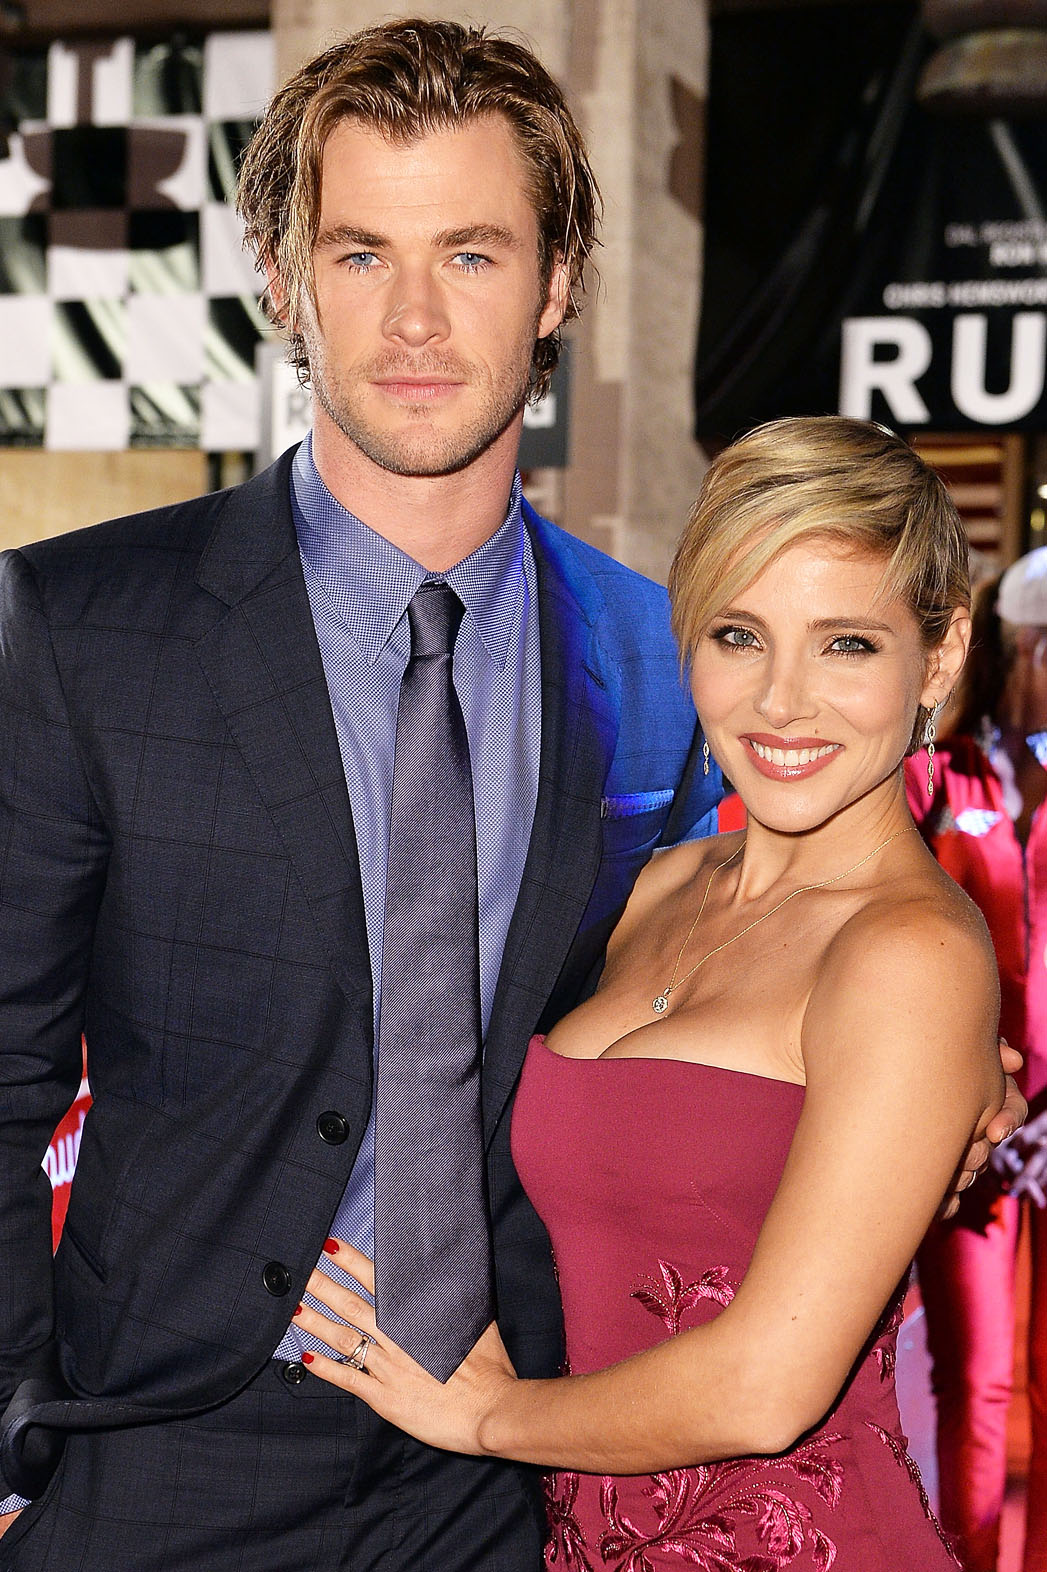 ROME, ITALY - SEPTEMBER 14:  Chris Hemsworth and Elsa Pataky attend 'Rush' The Movie Rome Premiere at Auditorium della Conciliazione on September 14, 2013 in Rome, Italy.  (Photo by Tullio M. Puglia/Getty Images)